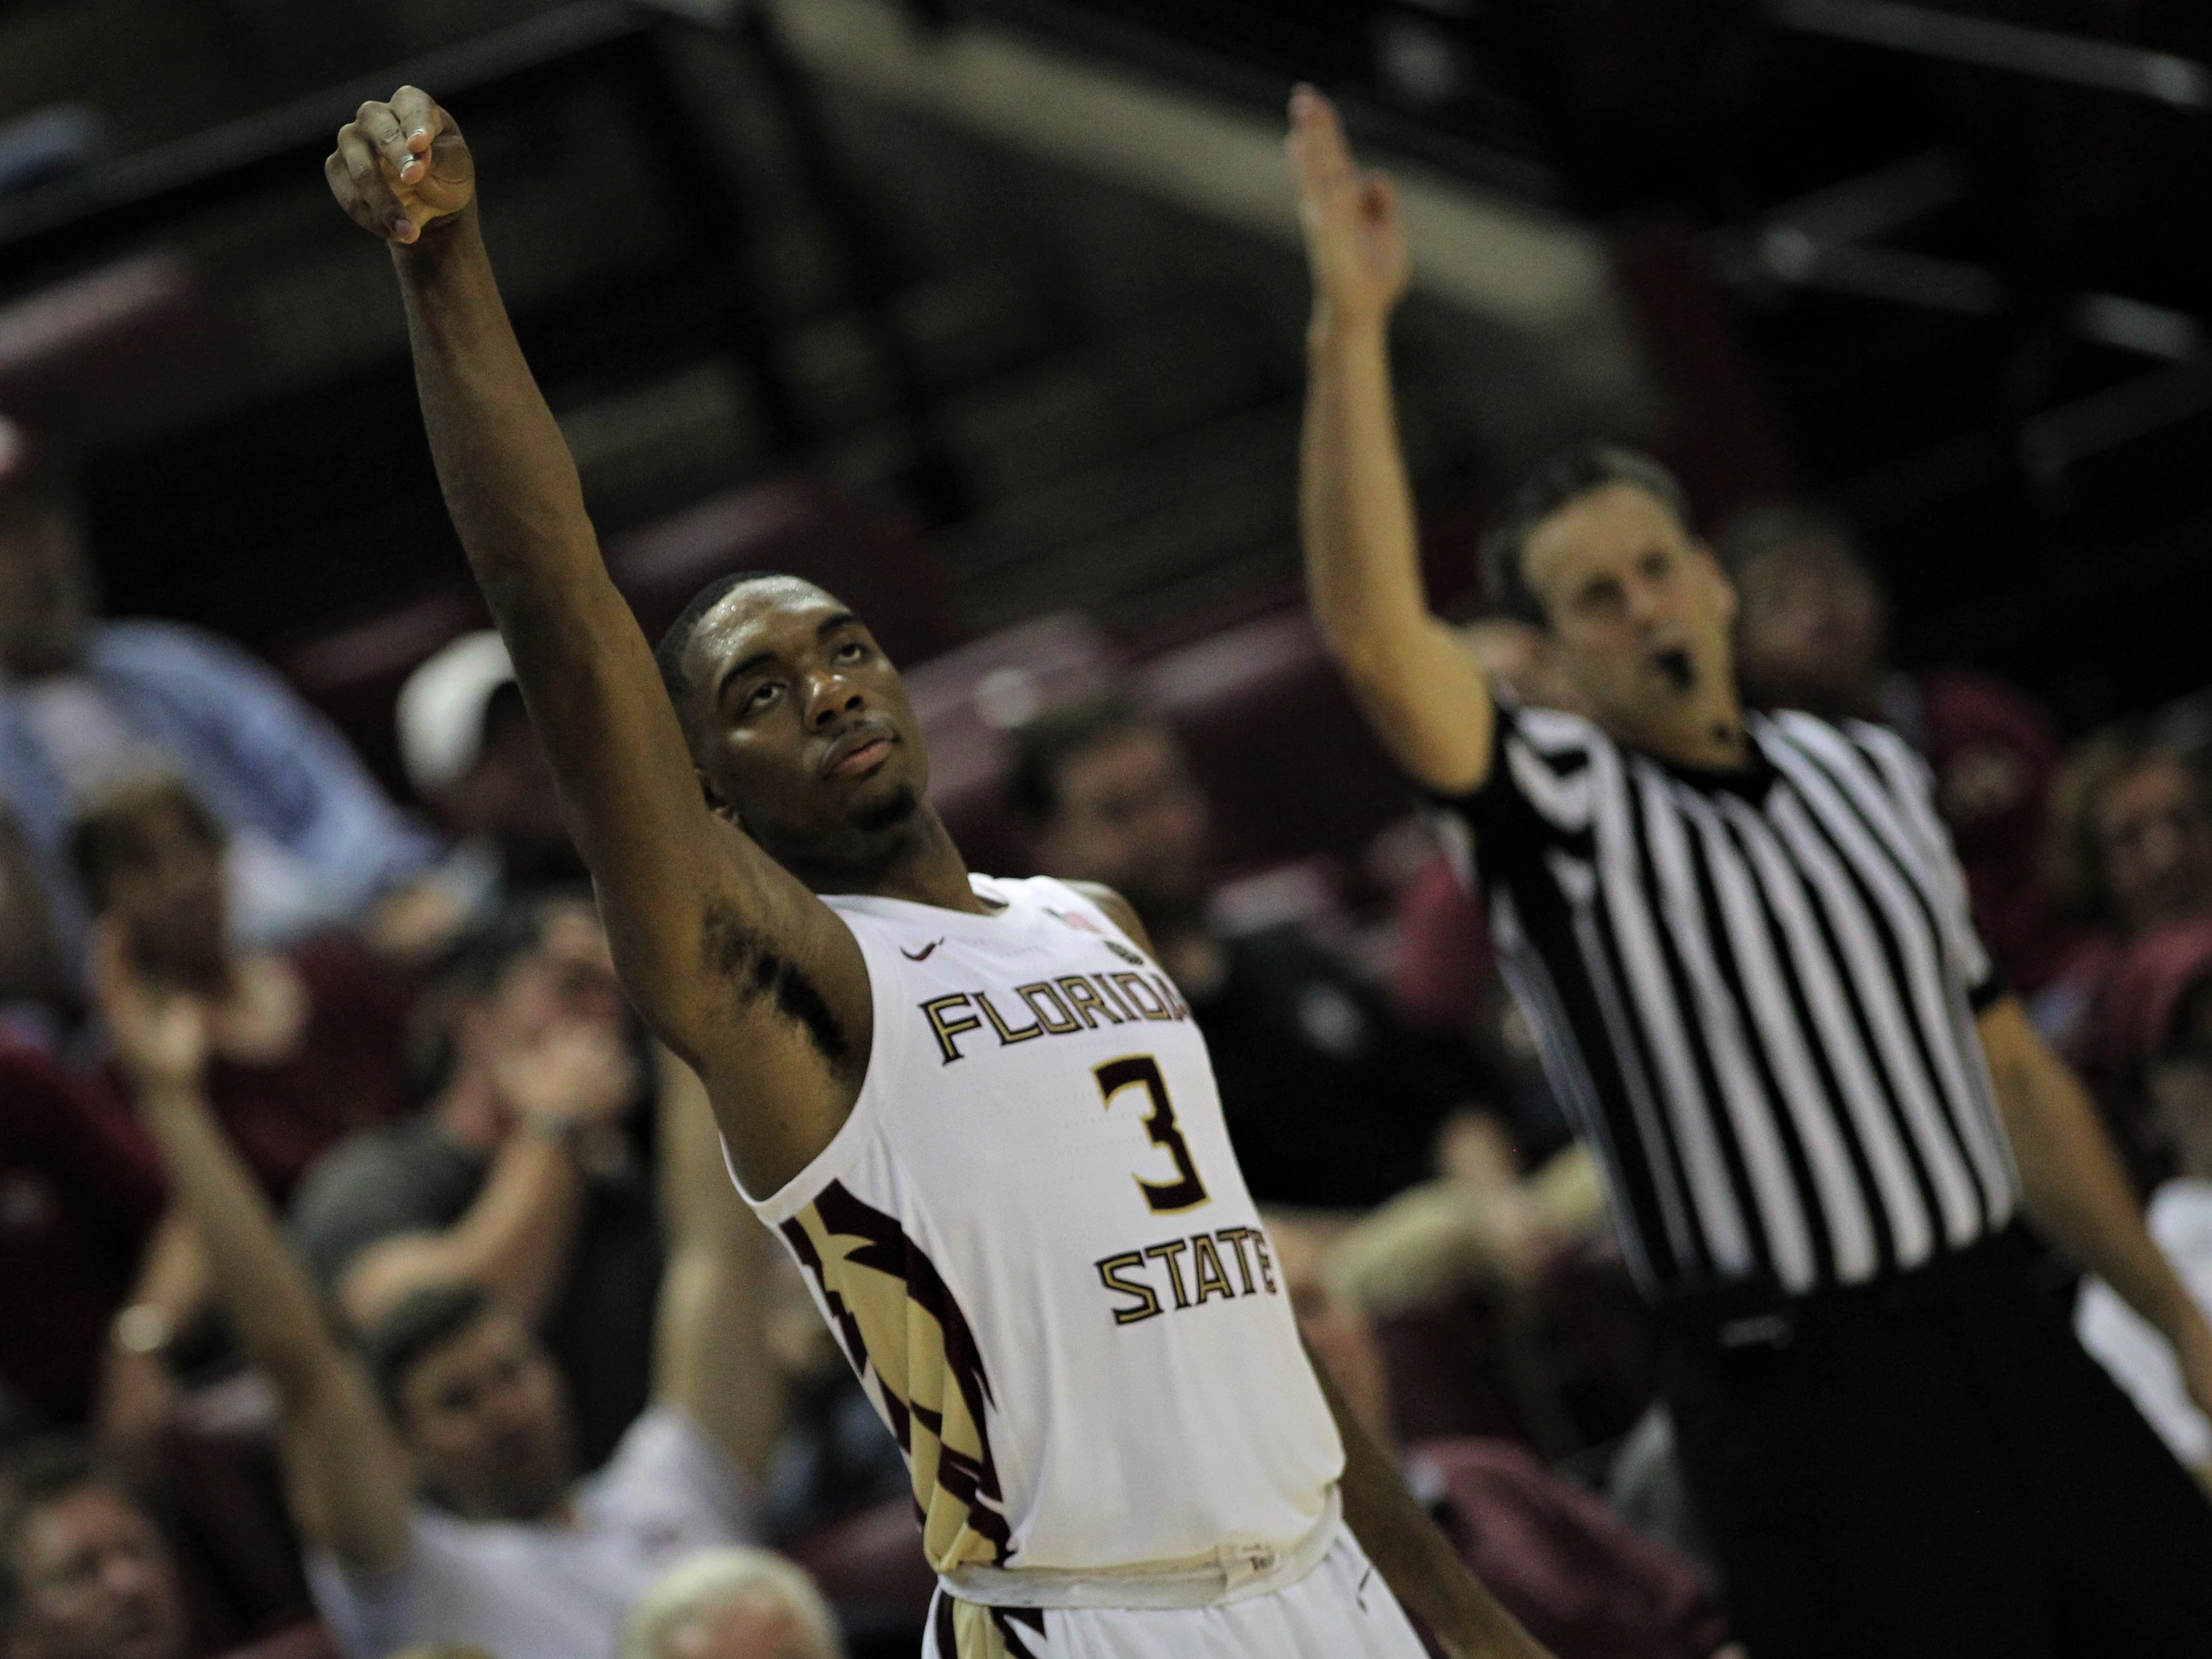 Florida State's Trent Forrest reacts to another made 3-pointer during the Sunshine Showdown game against Florida on Tuesday at the Tucker Civic Center.